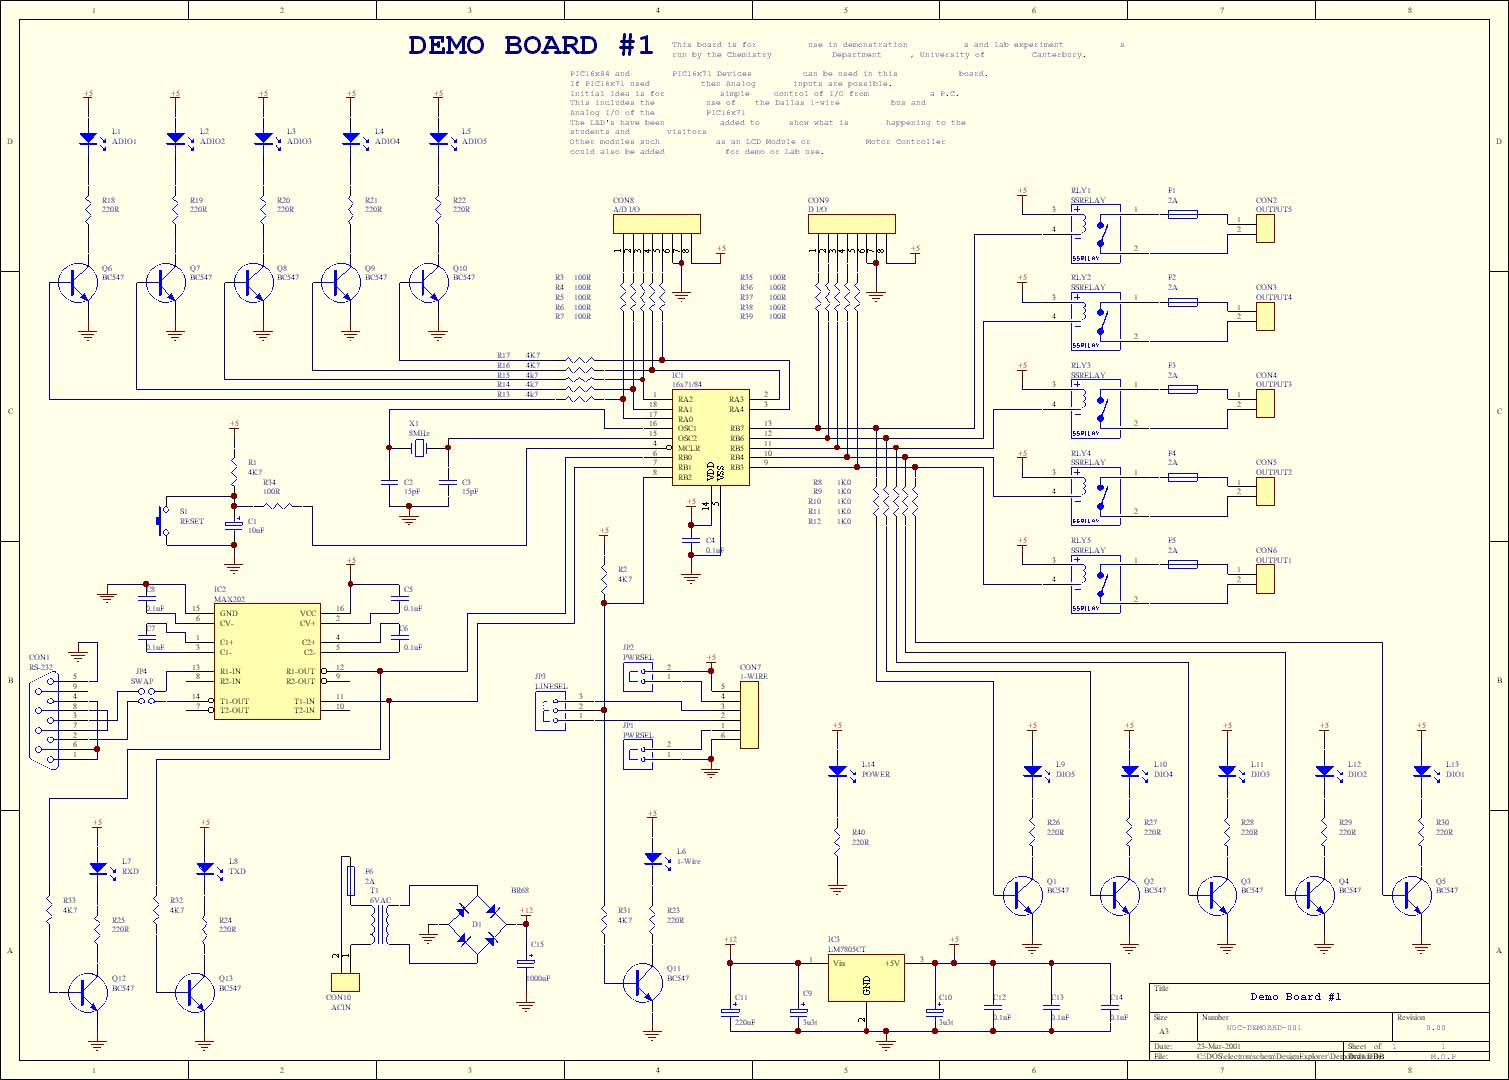 Microcontroller Based Circuits Projects Tutorials Electronics Led Project Circuit Diagram Pic Demo Board